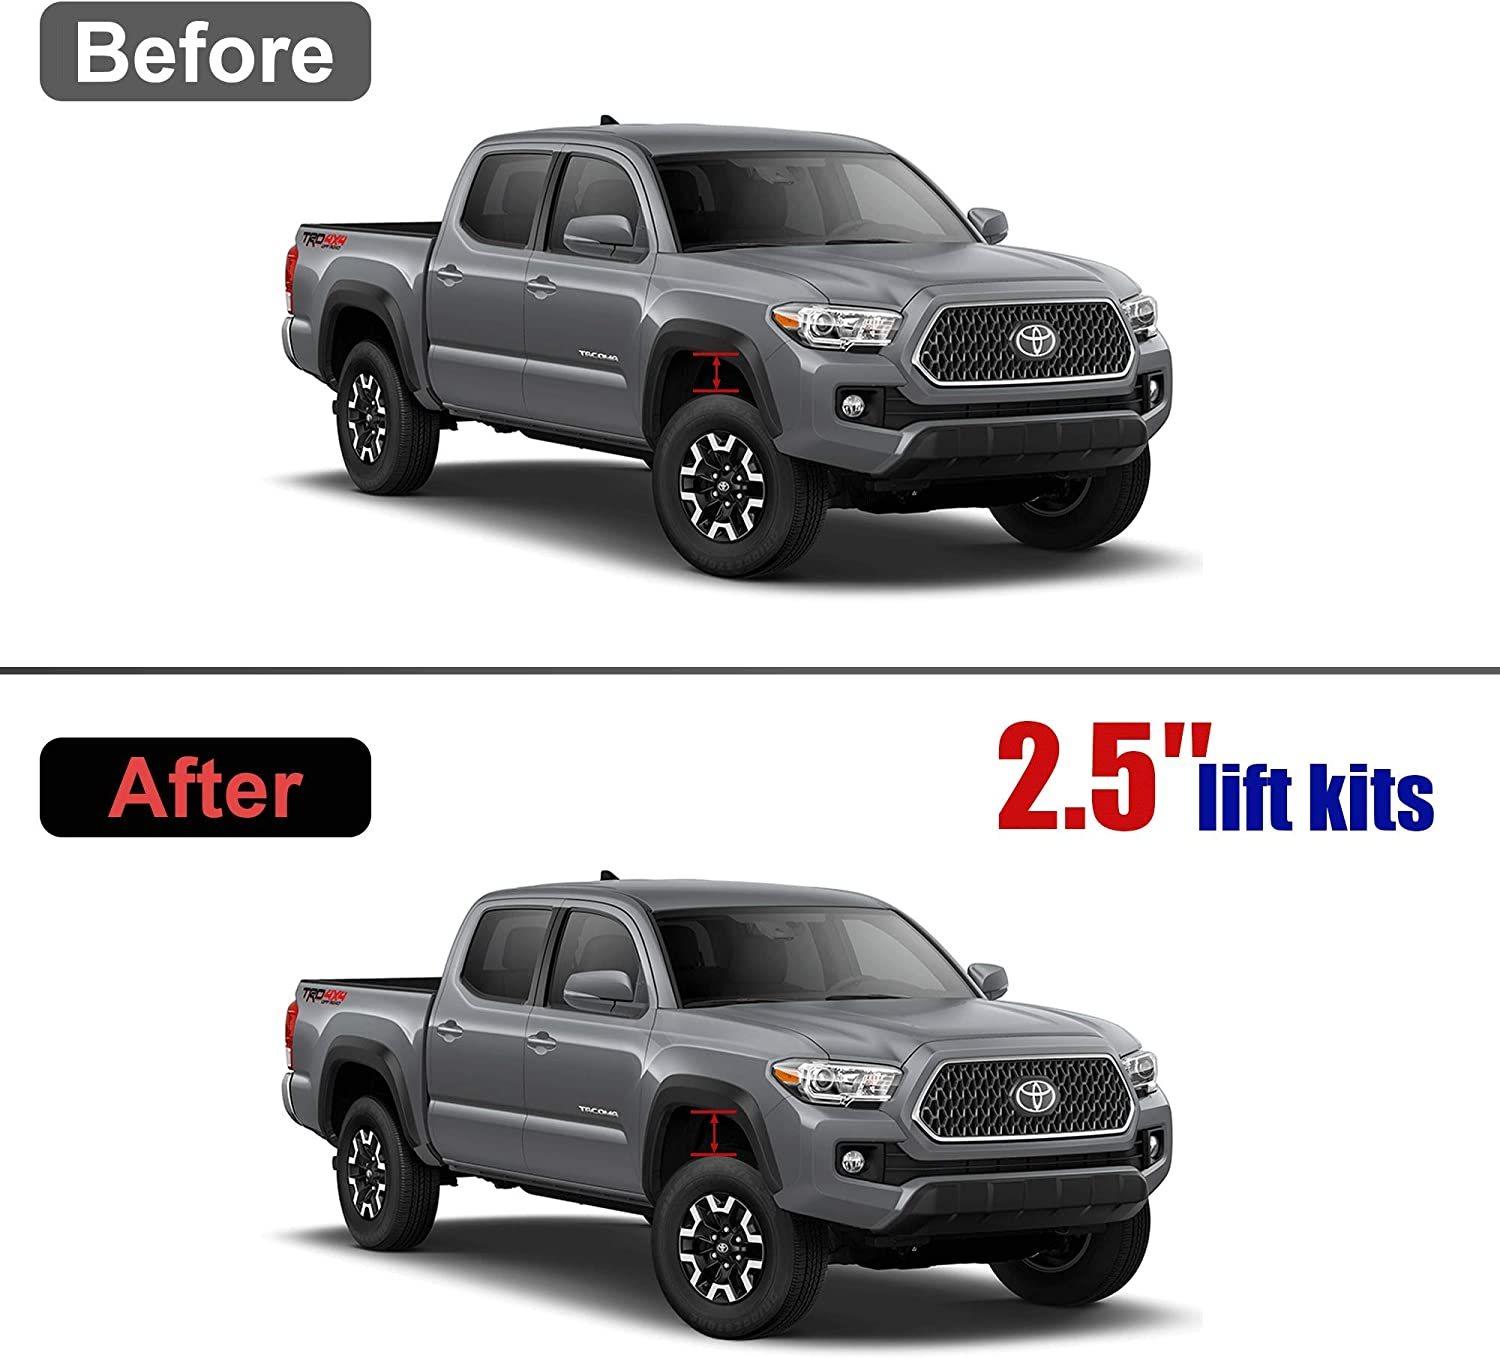 2.5 Front Leveling Lift Kits for 2005-2019 Toyota Tacoma 4WD 2WD,2003-2019 4Runner 2WD 4WD,2007-2015 FJ Curise